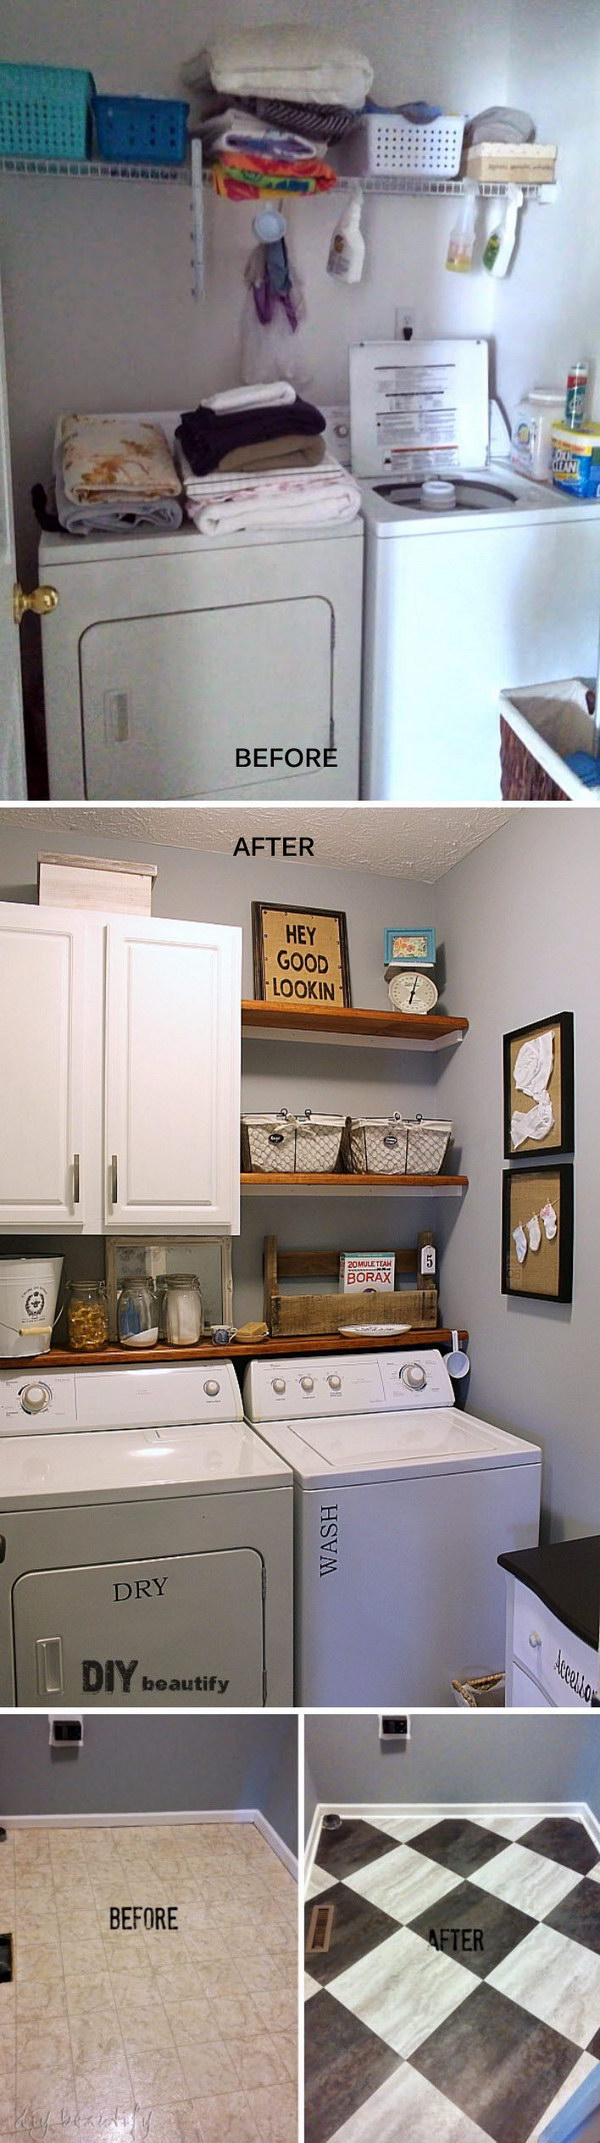 Awesome Before and After Laundry Room Makeovers - Hative